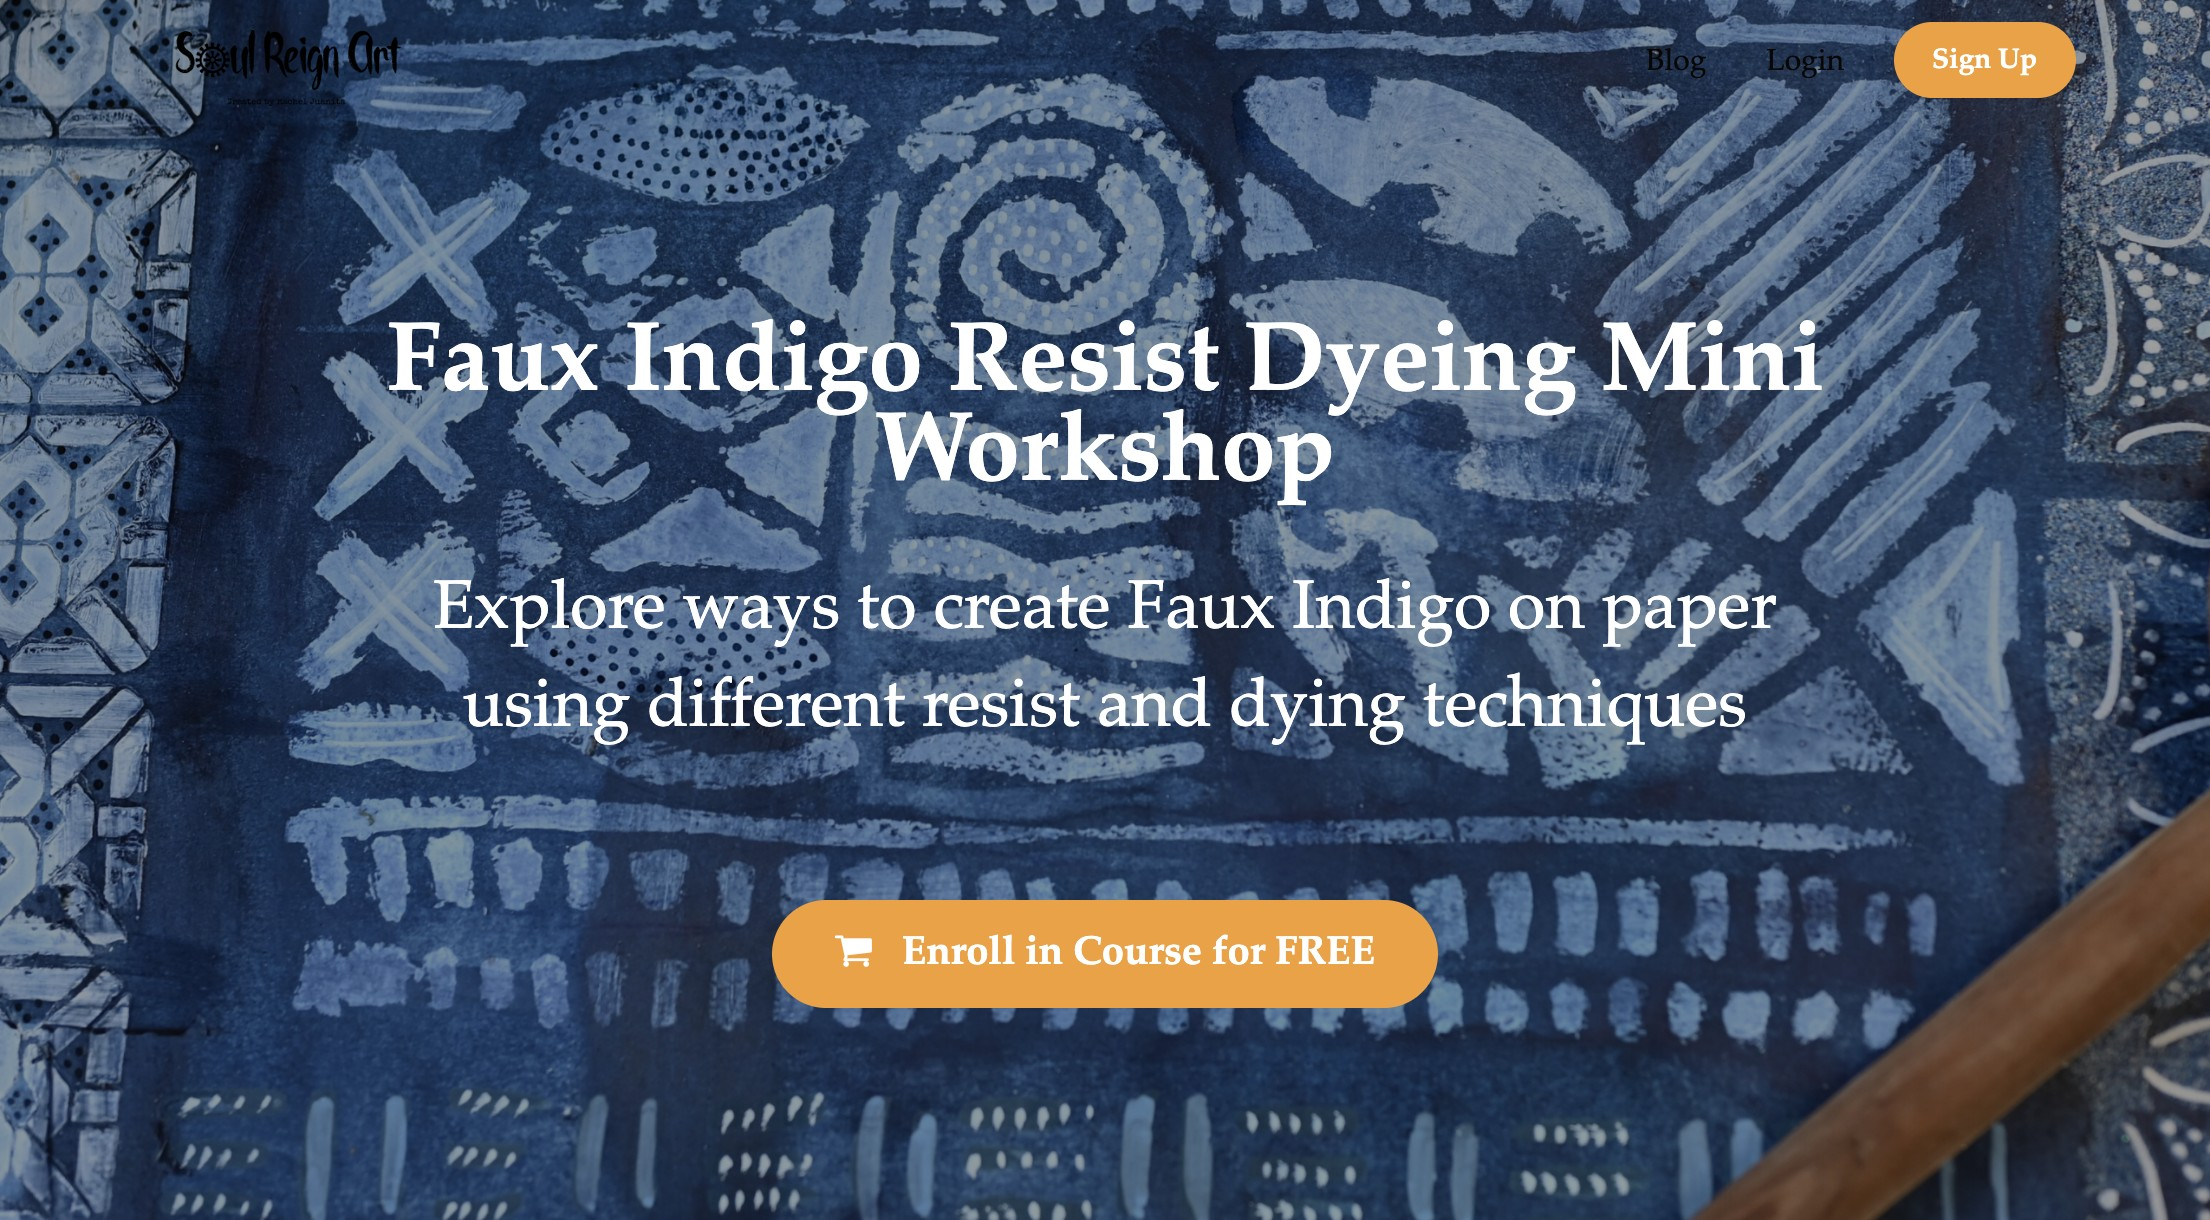 Enroll in Free Faux Indigo Resist Dyeing Mini Course